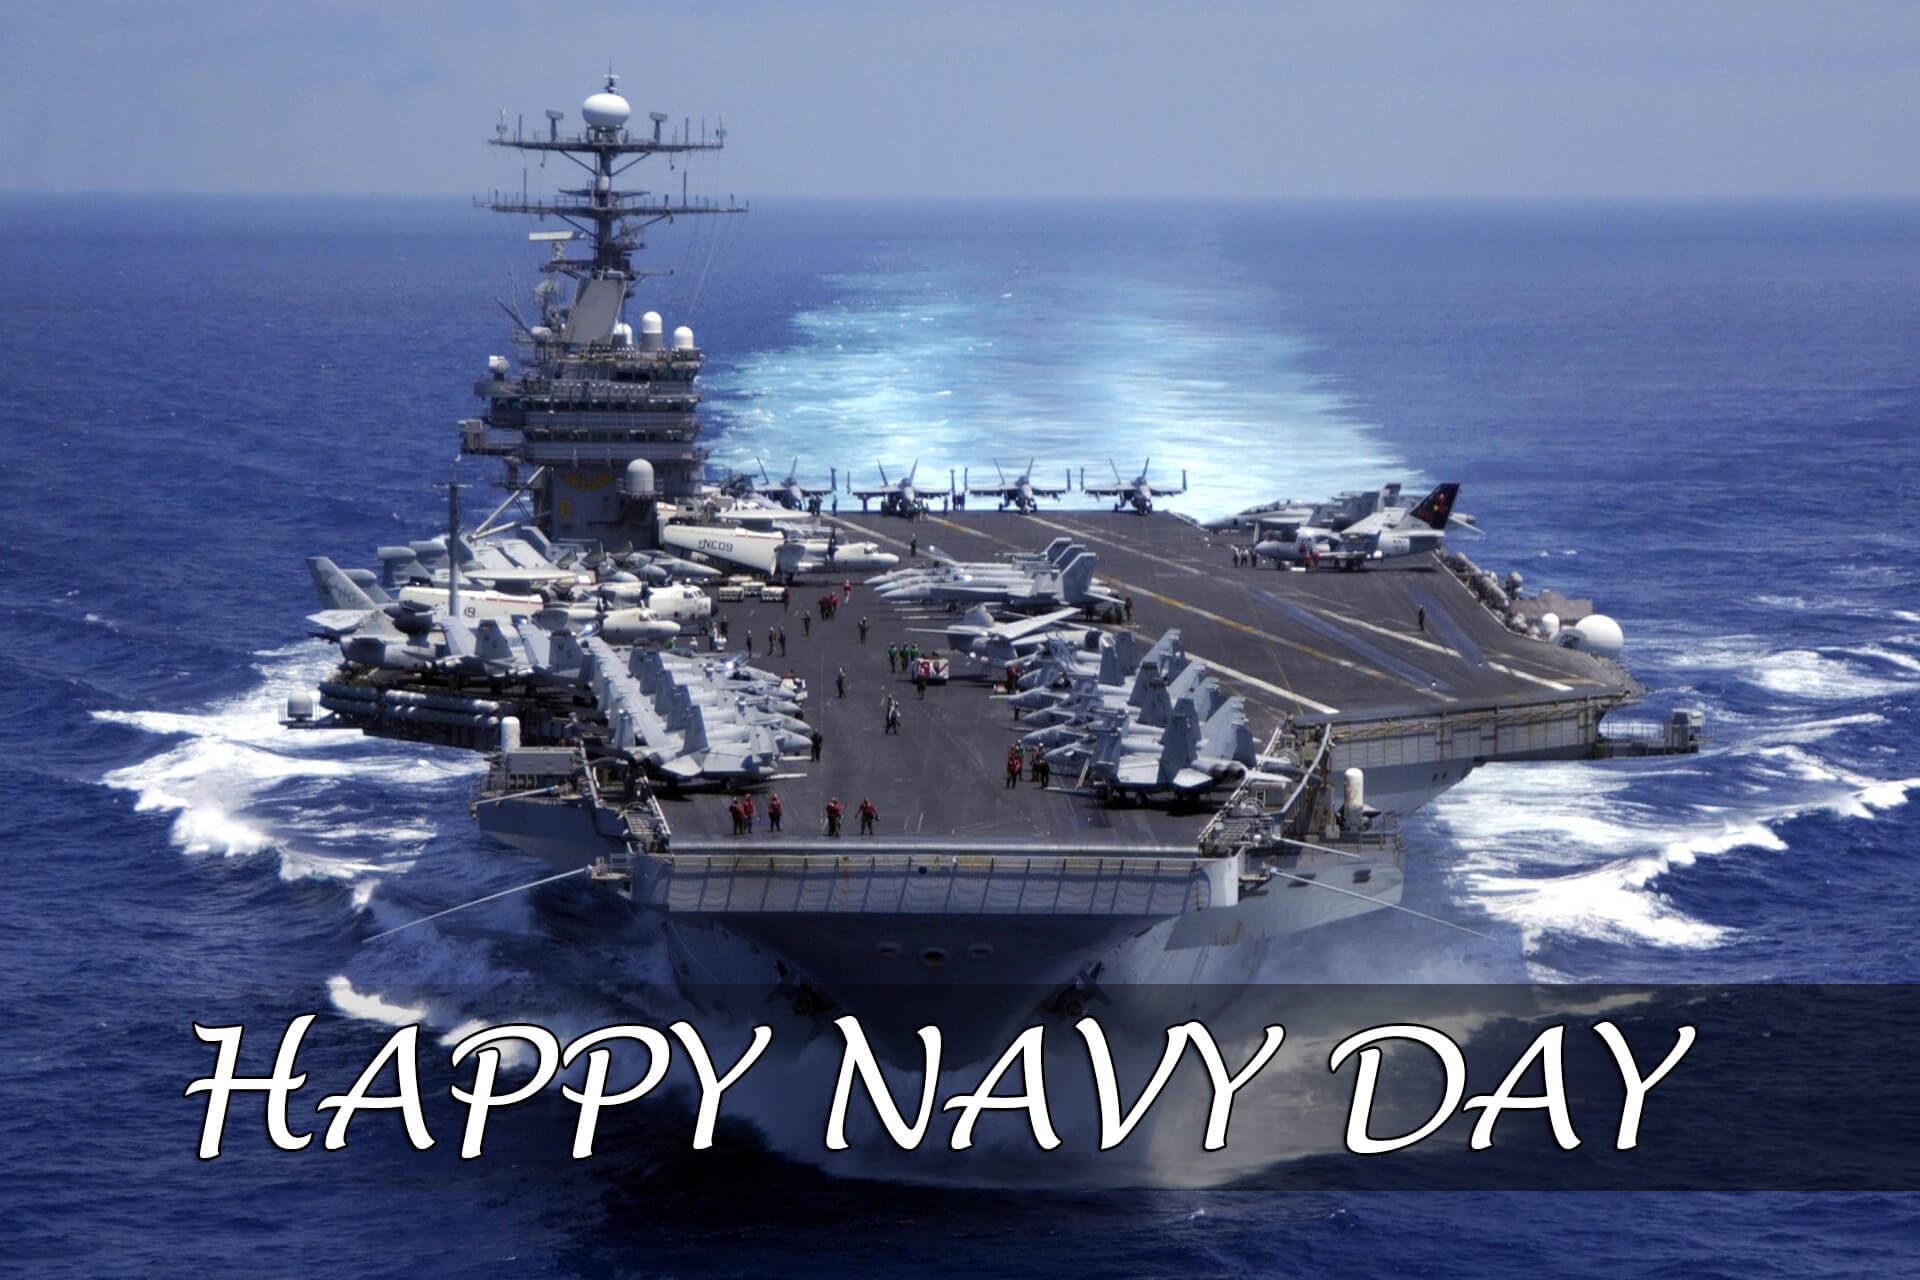 happy navy day war ships wishes greetings hd desktop wallpaper